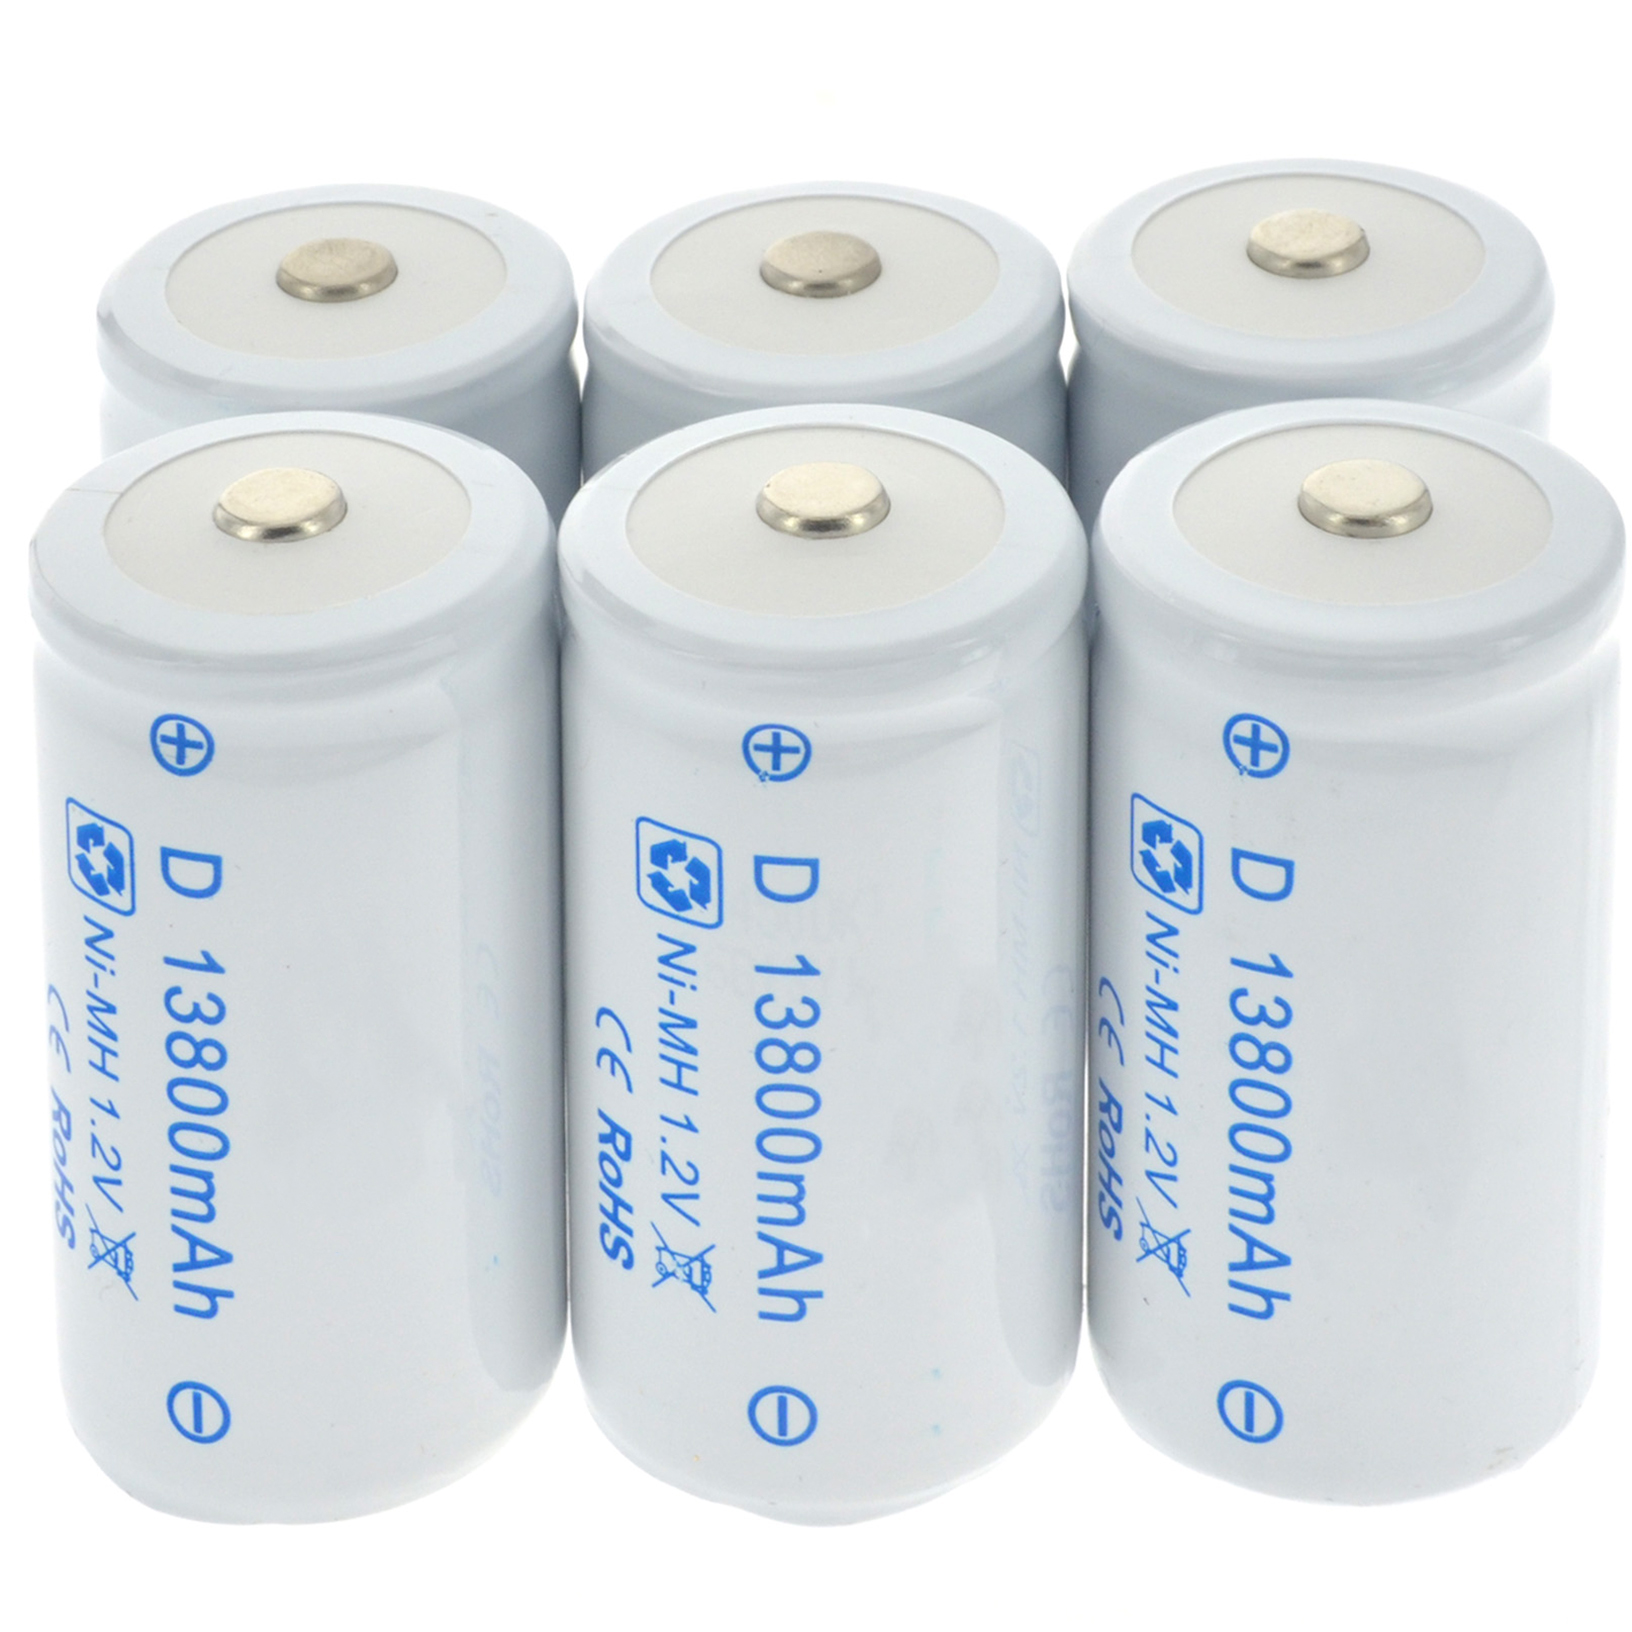 1-8pcs D Size Battery D-Type 13800mAh 1.2V Ni-MH Rechargeable Batteries